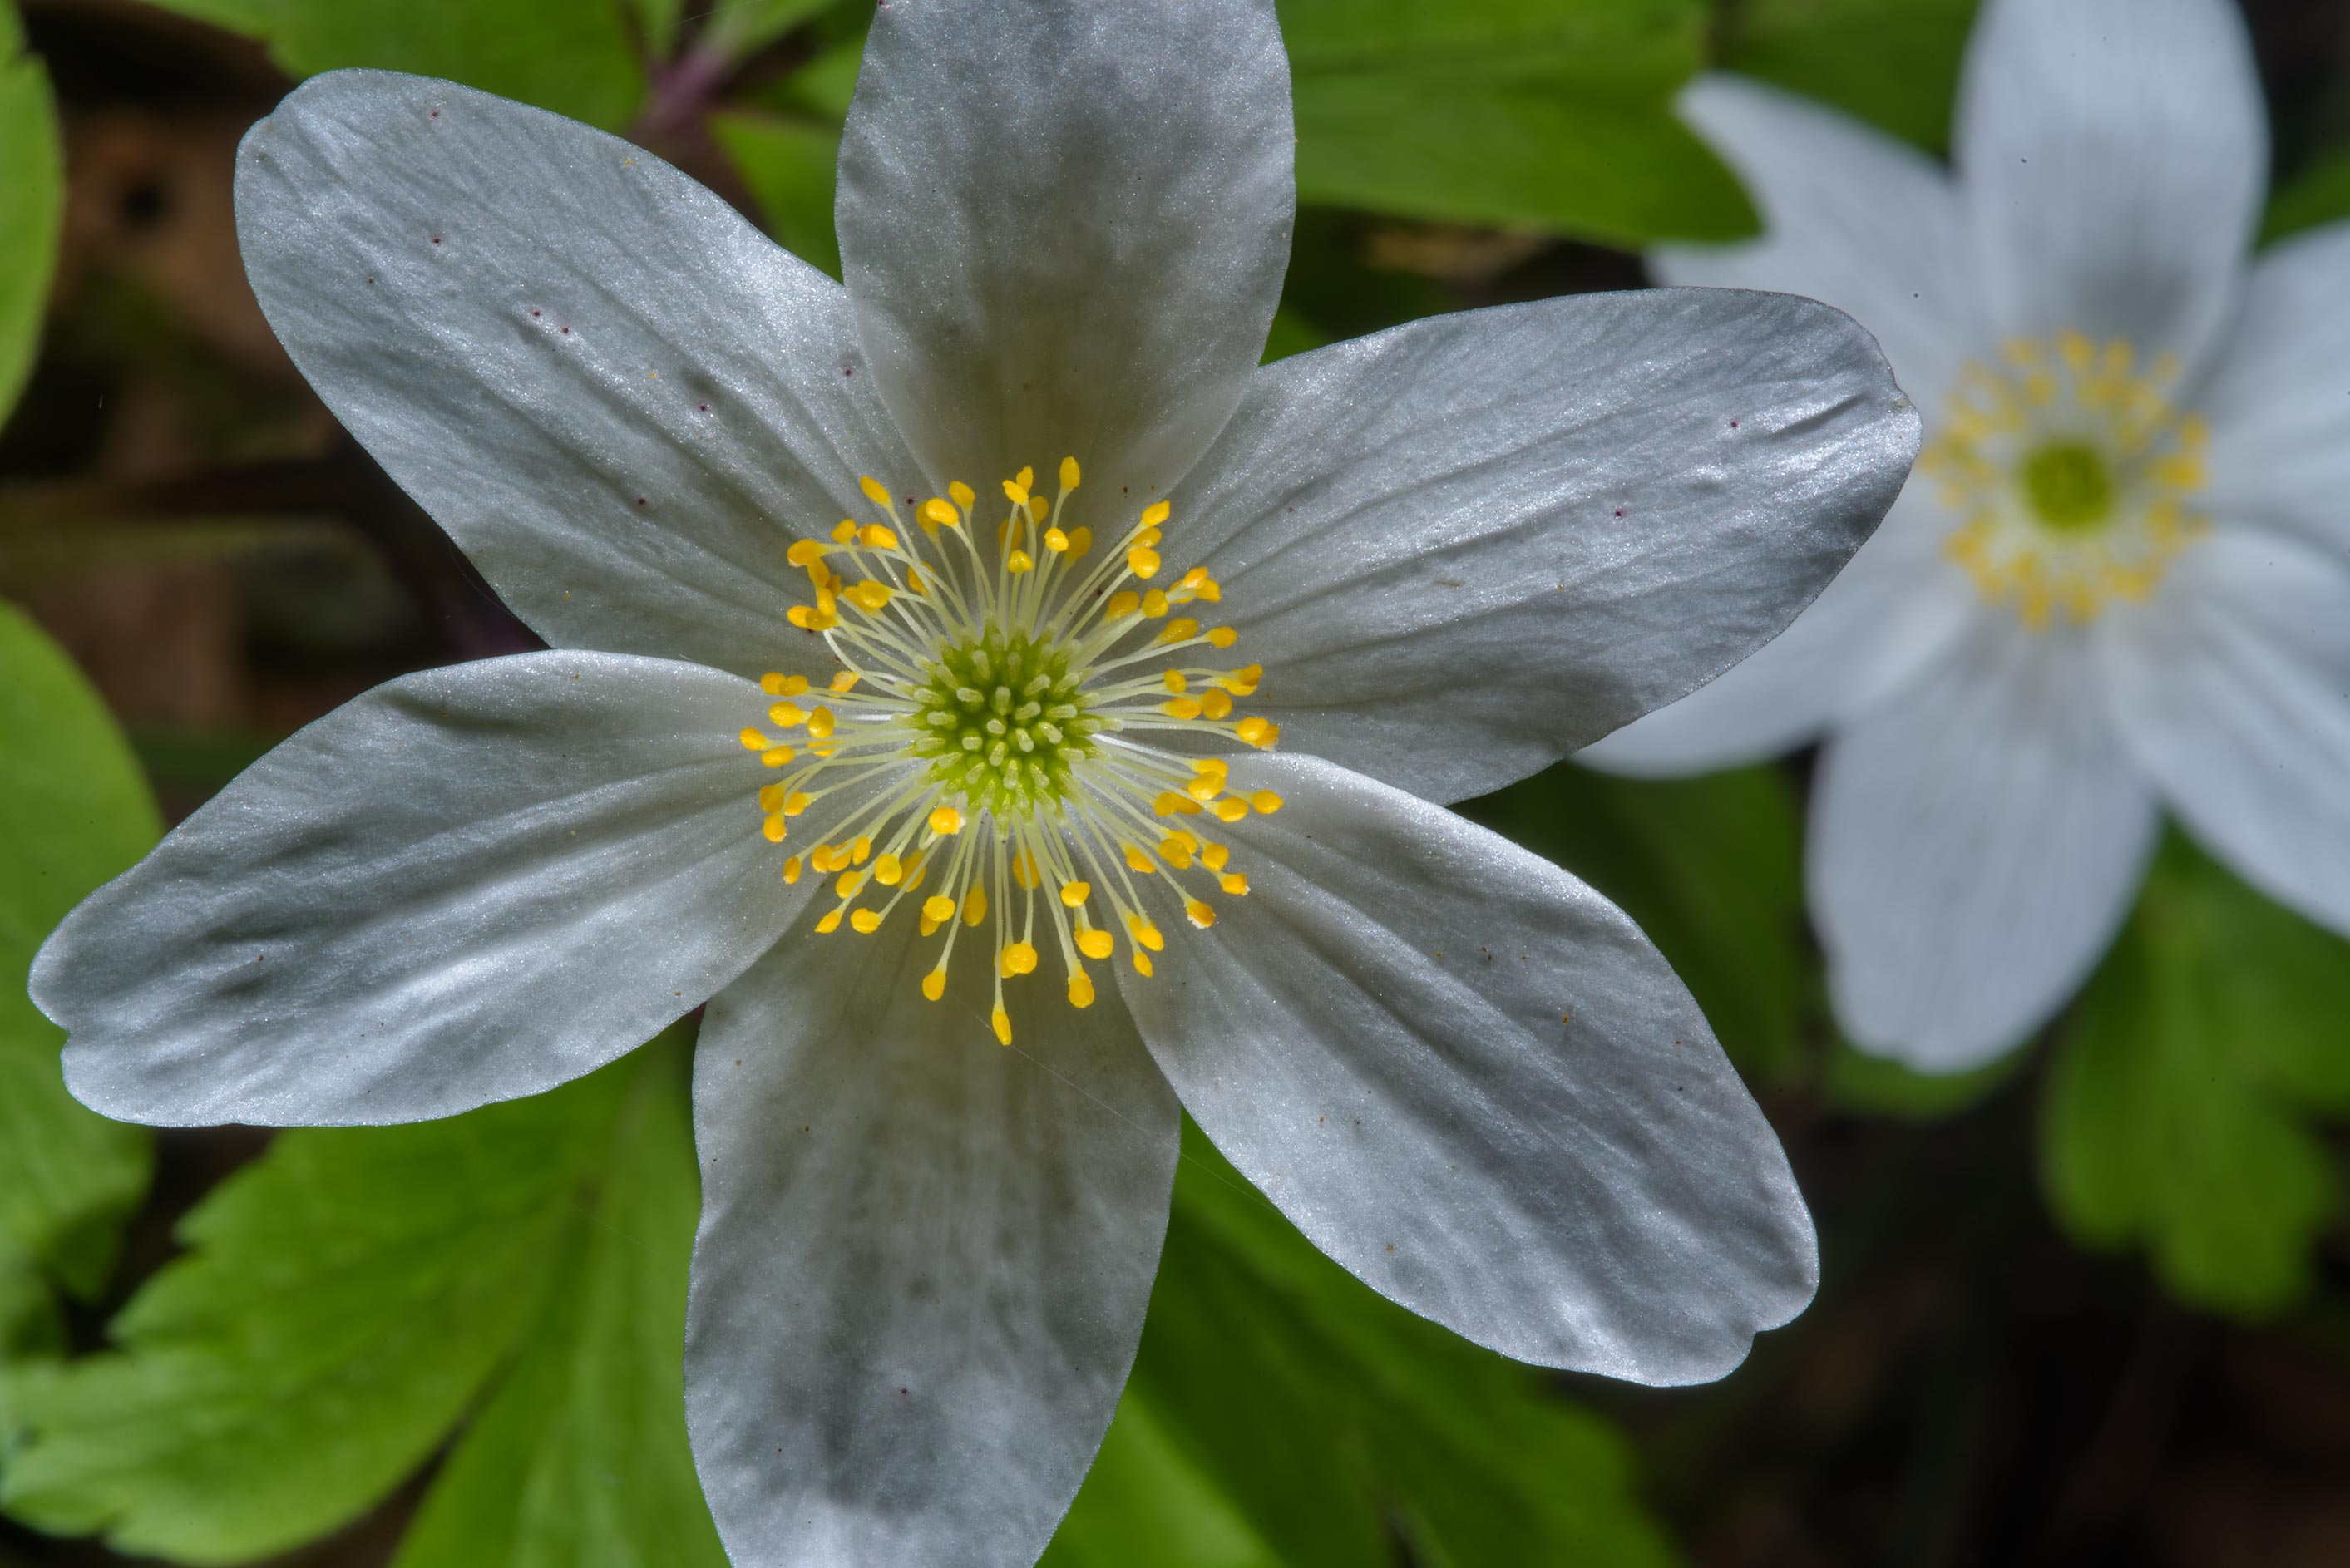 Flowers of wood anemone (Anemone nemorosa) in...West from St.Petersburg, Russia